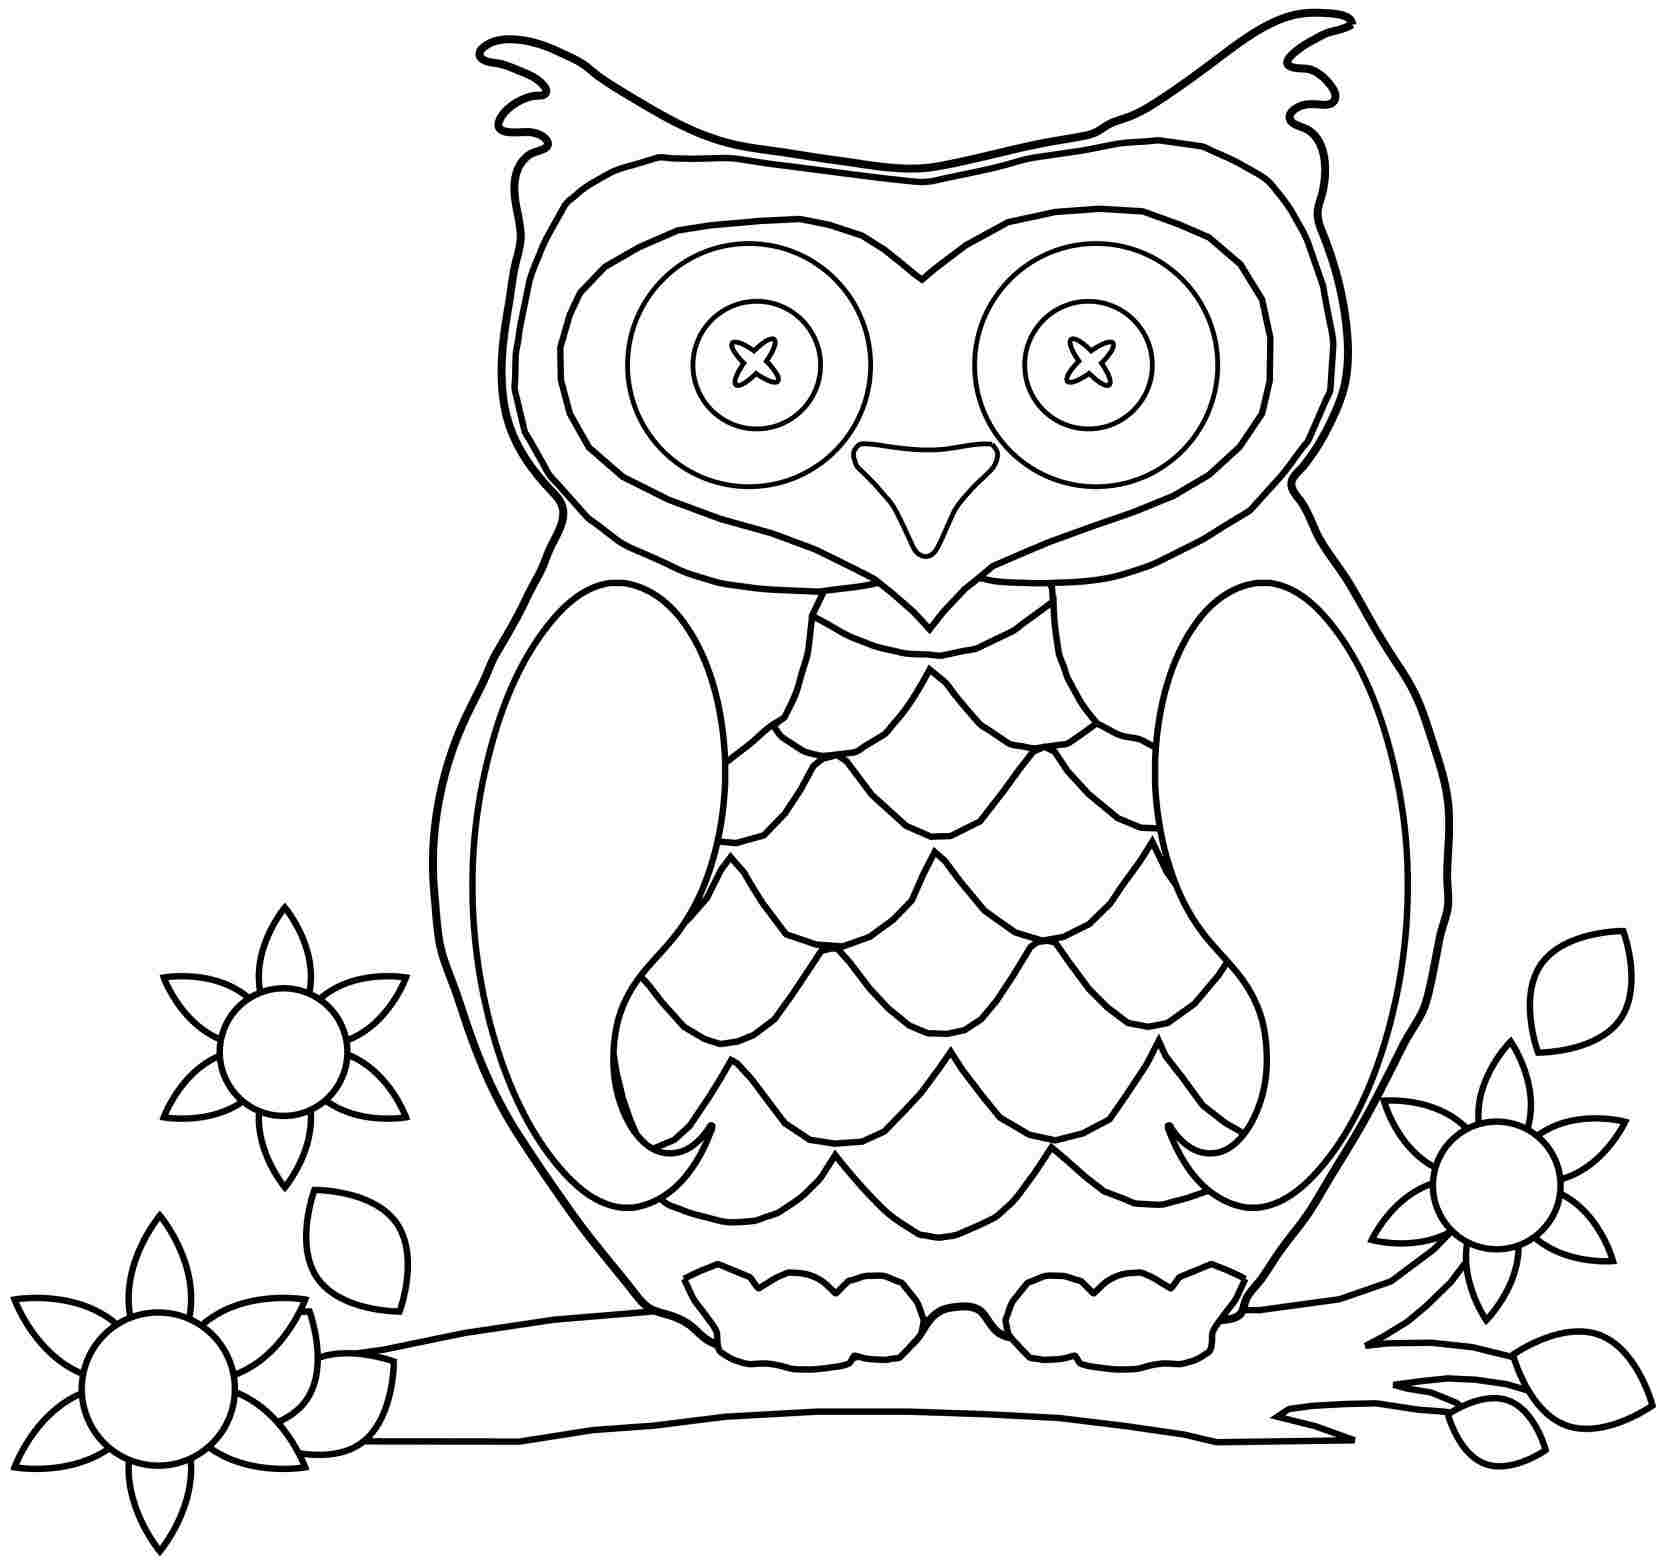 owl images to color owl coloring pages for adults free detailed owl coloring to images color owl